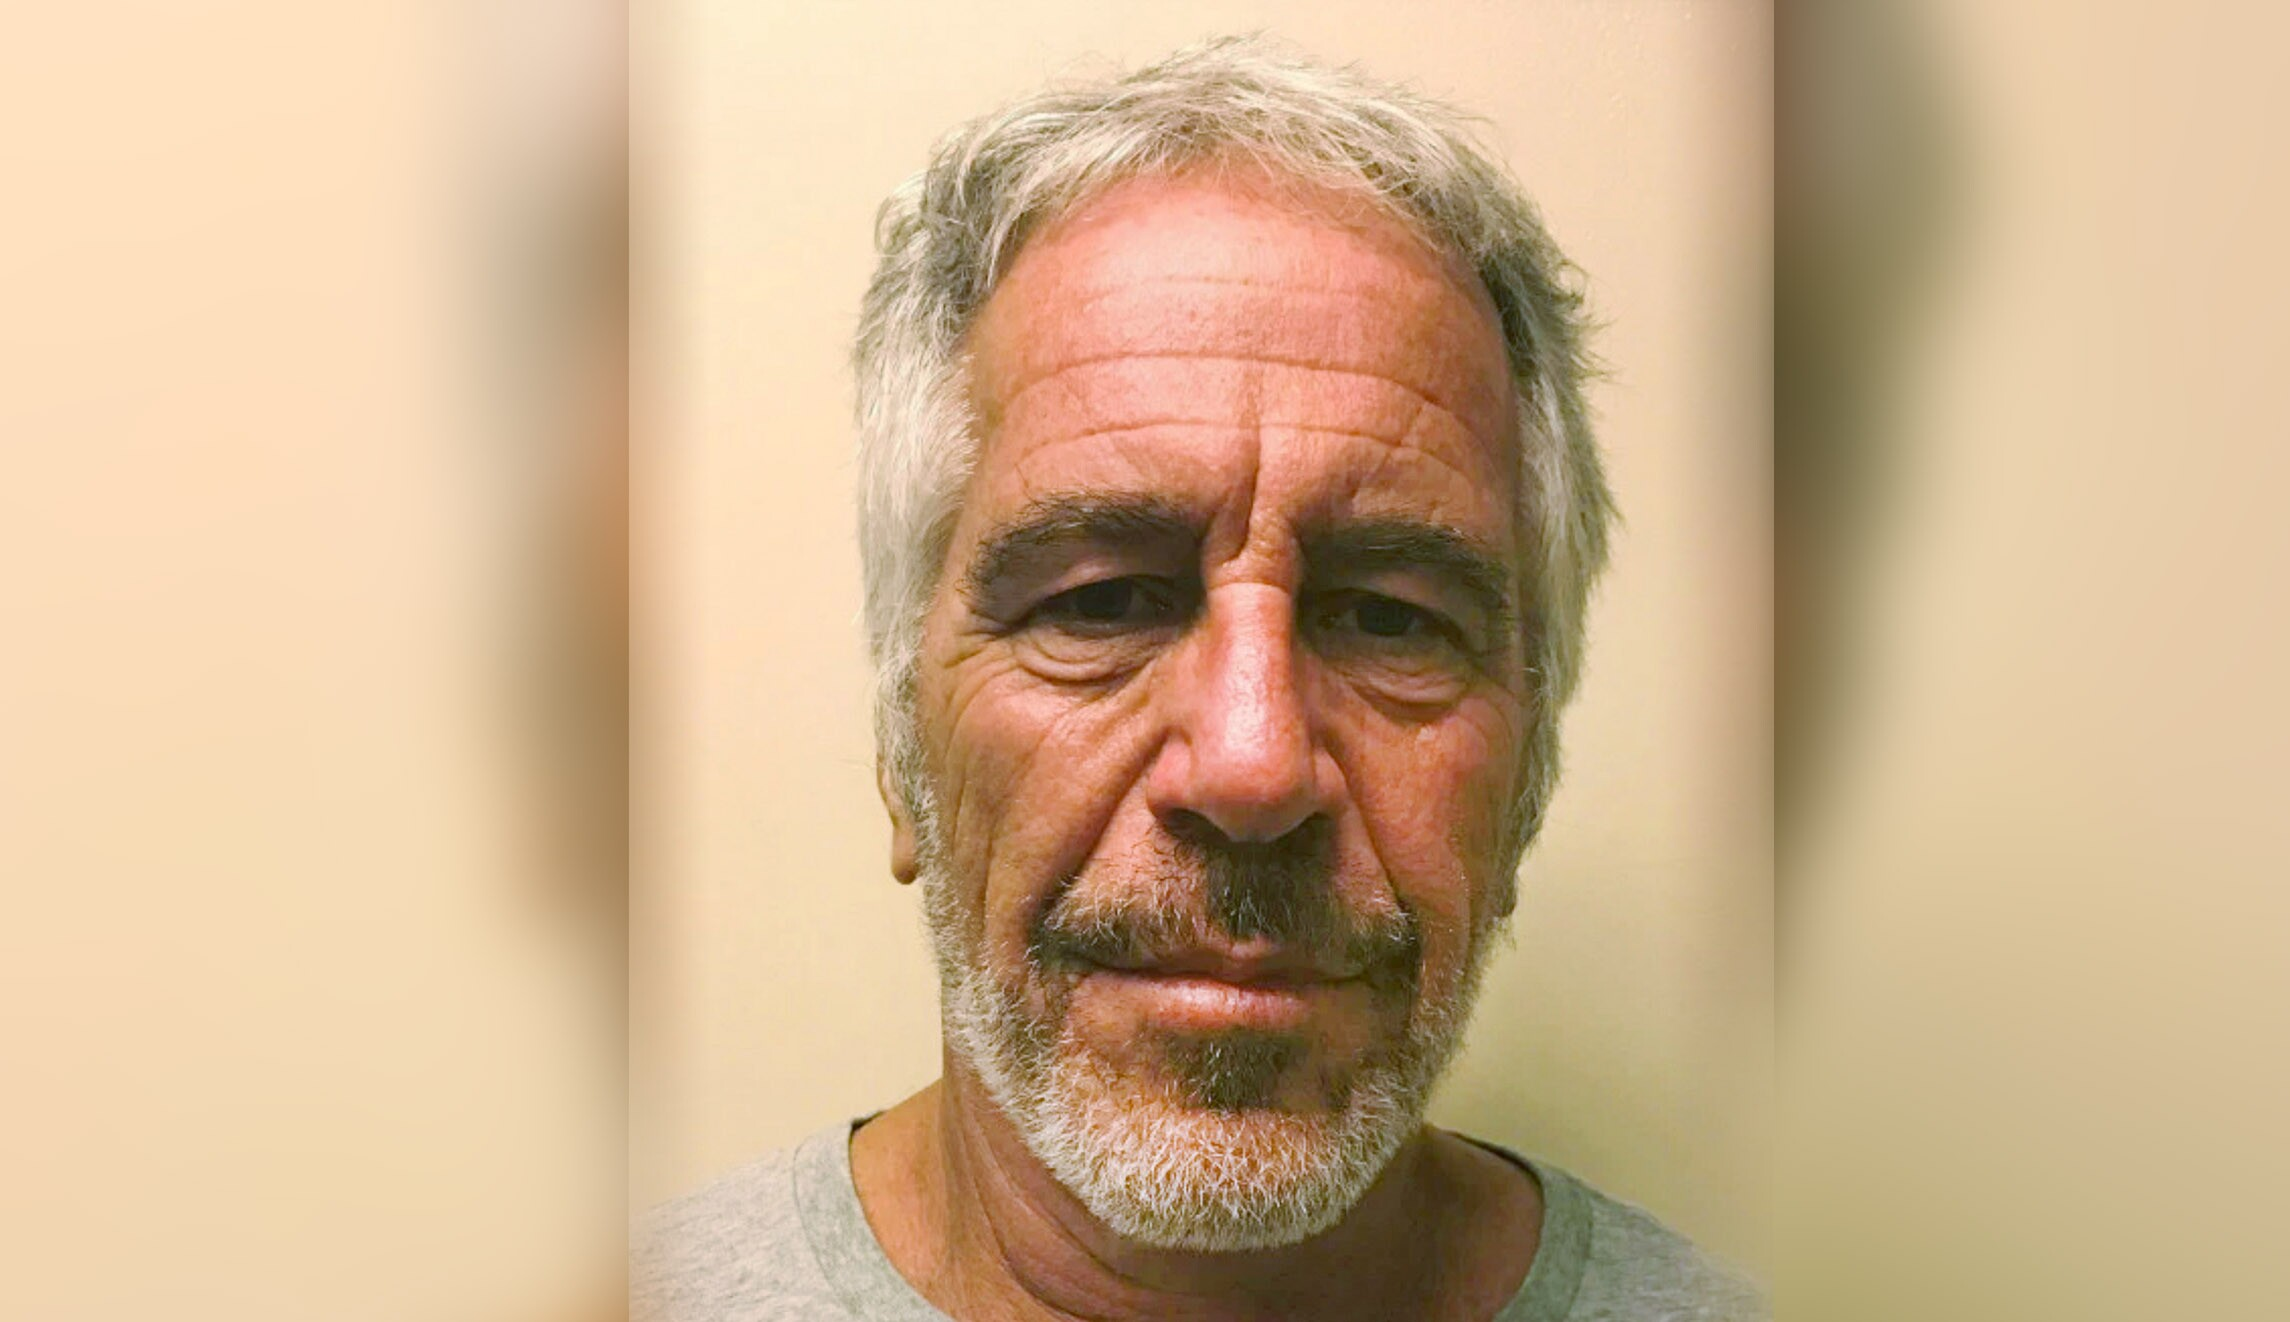 House minority leader demands answers from ABC News on Epstein story, Megyn Kelly says